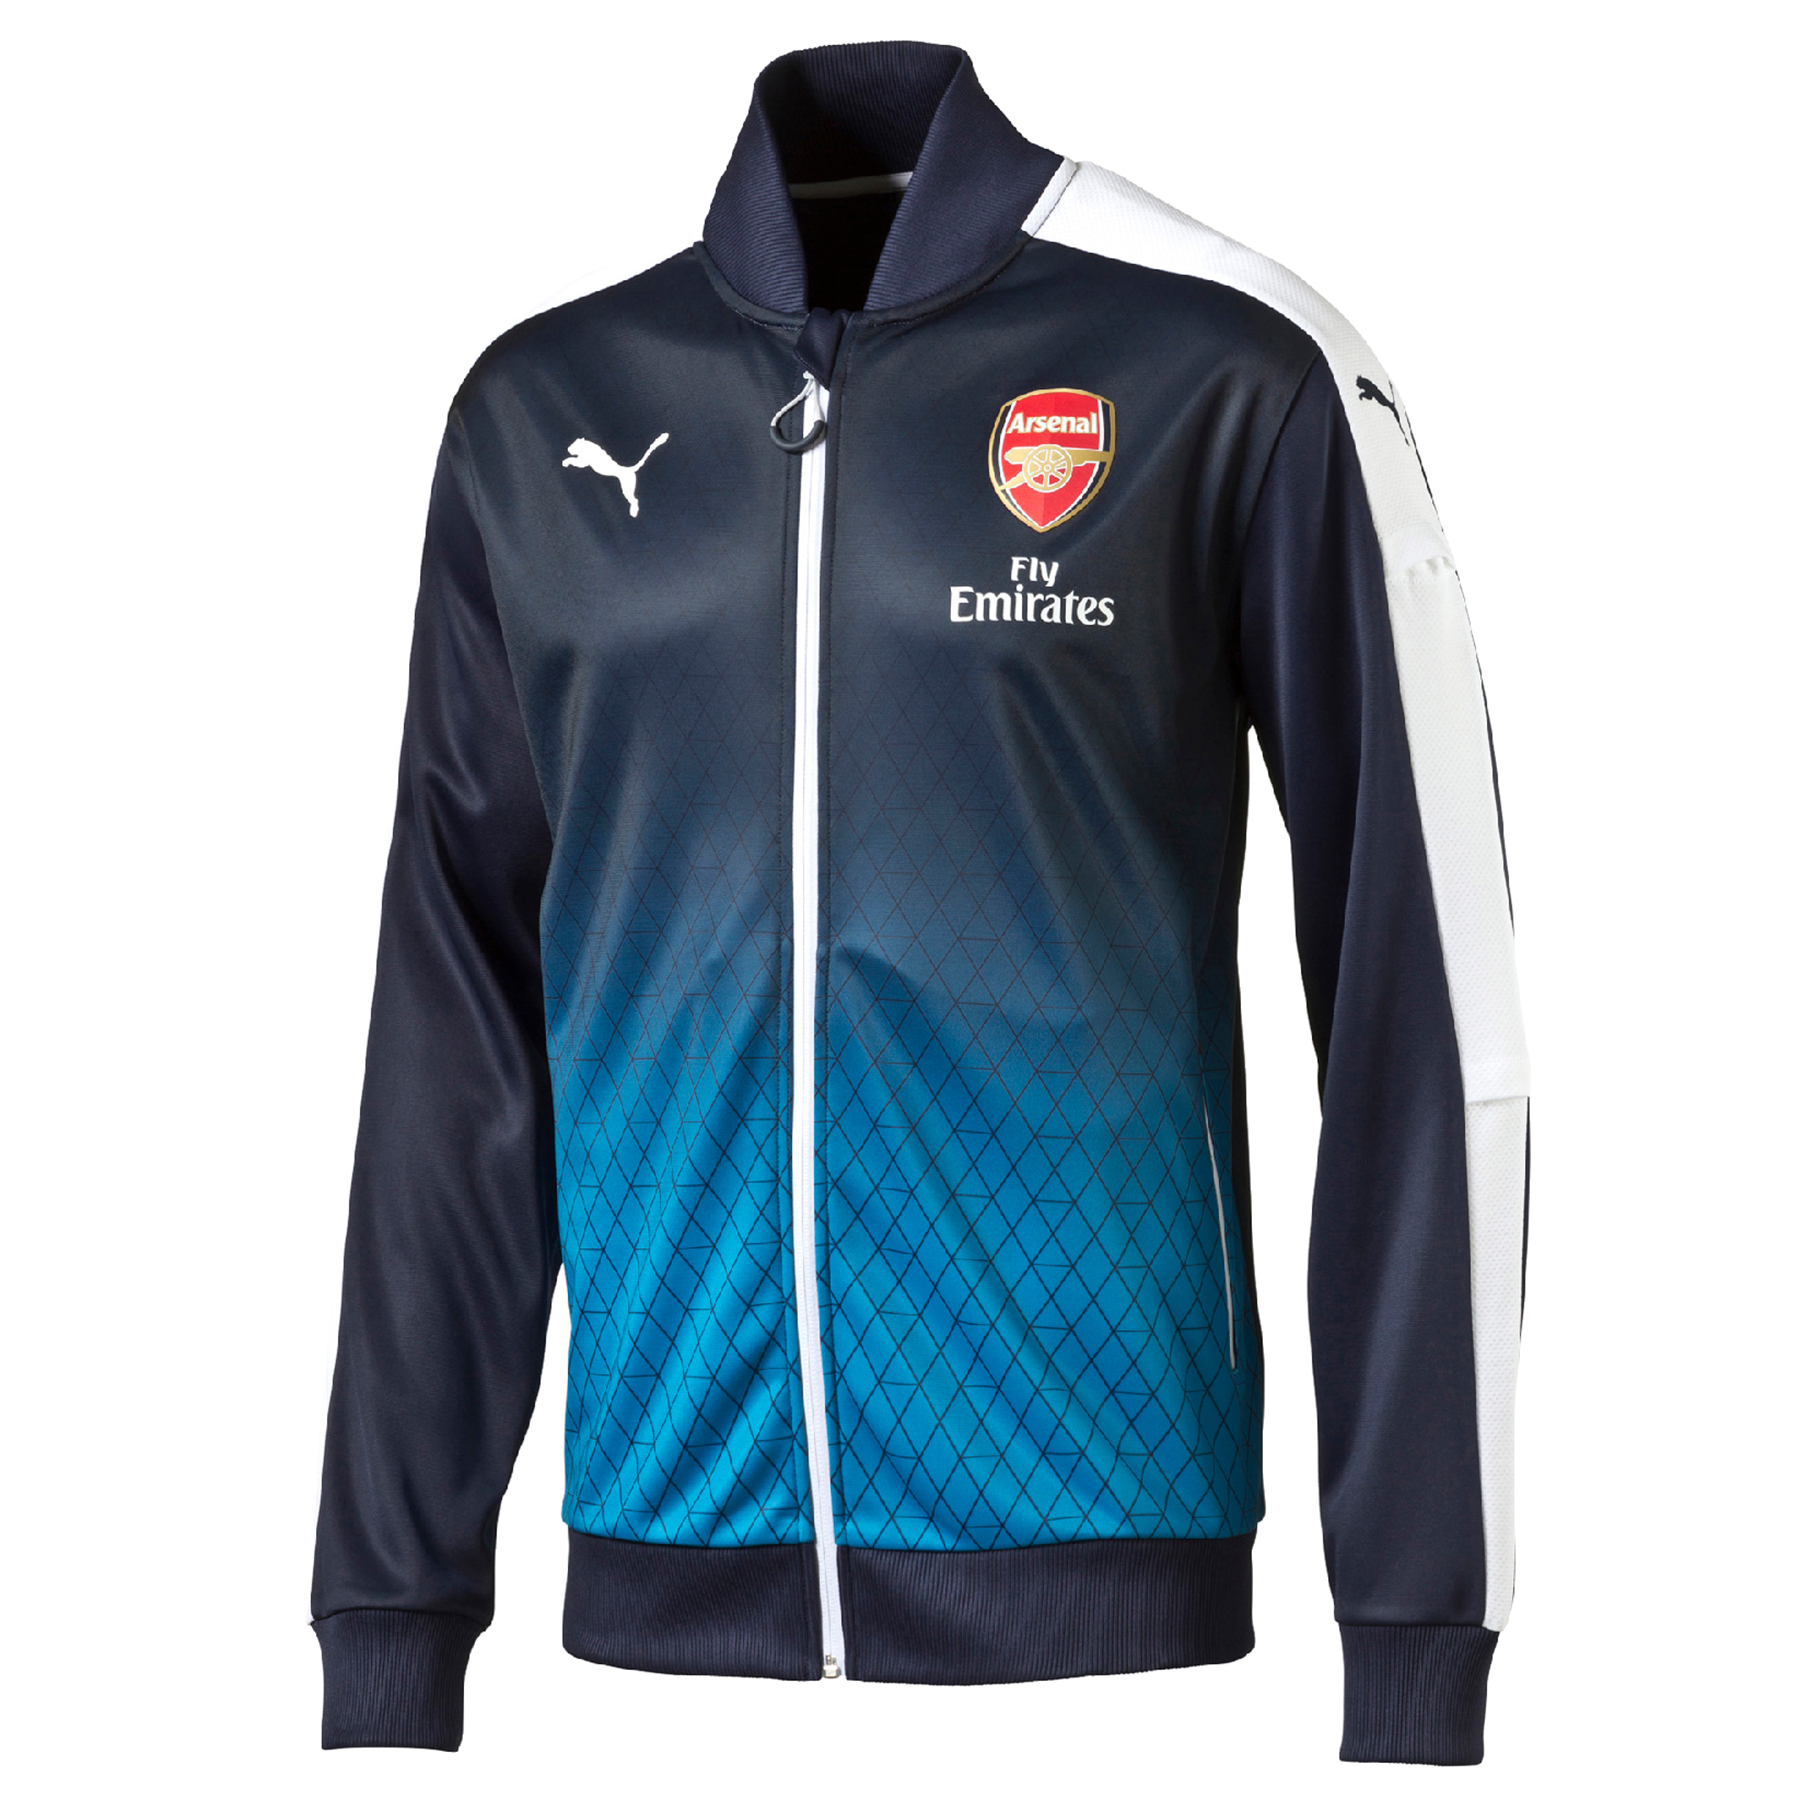 Arsenal T7 Stadium Jacket